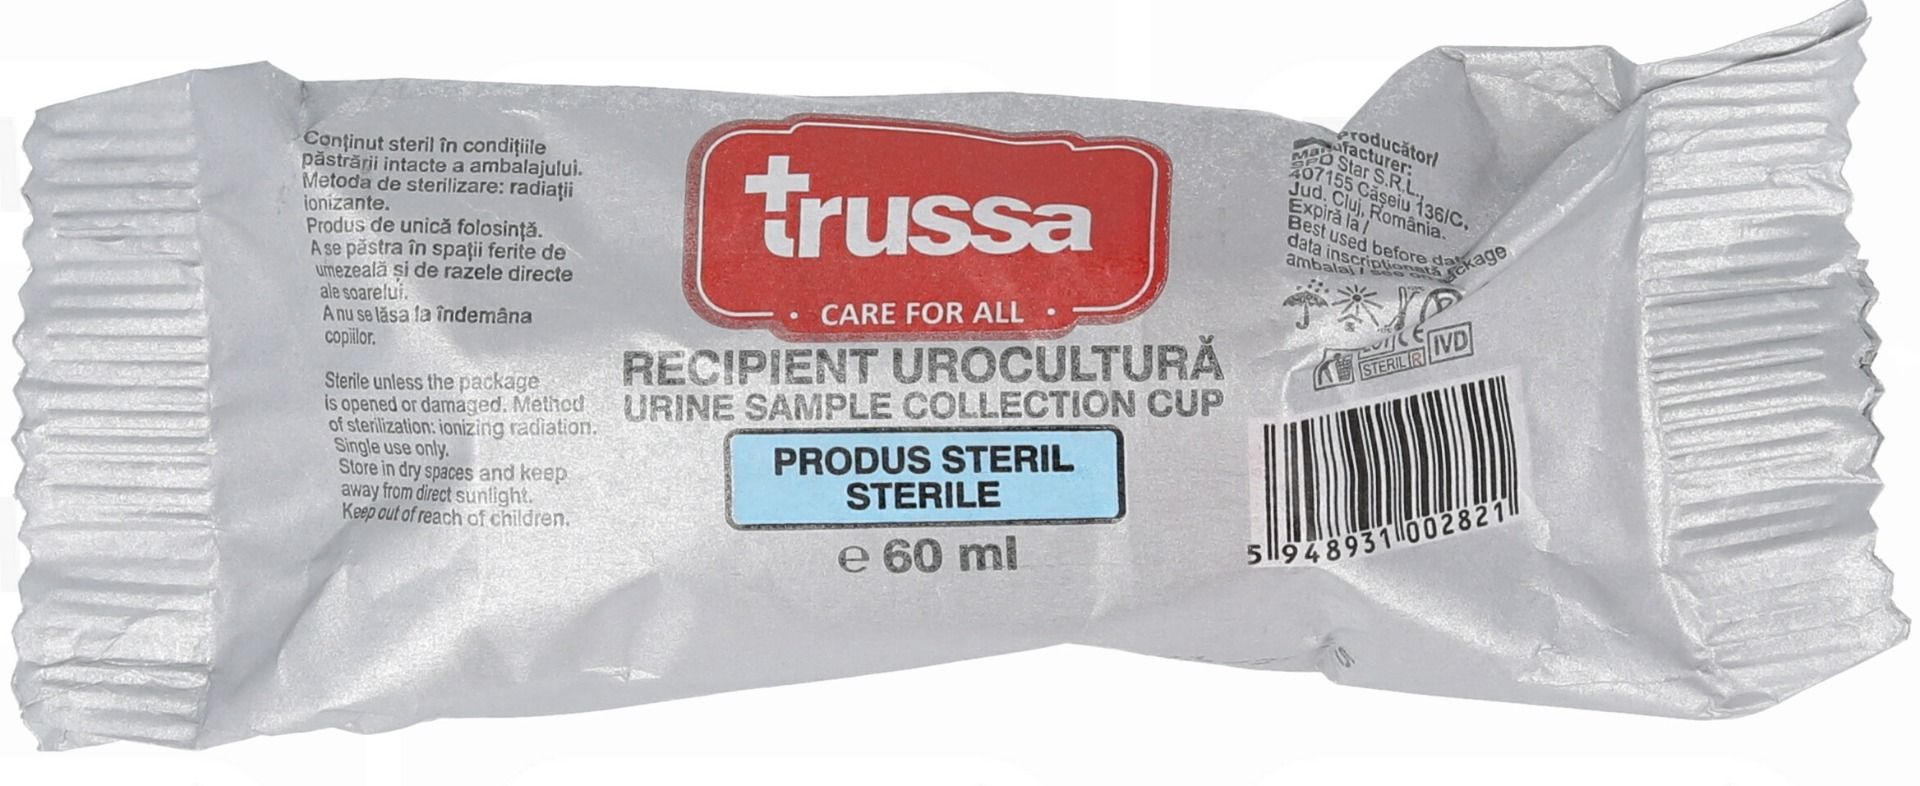 Recipient urocultura steril, 60 ml, Trussa drmax poza